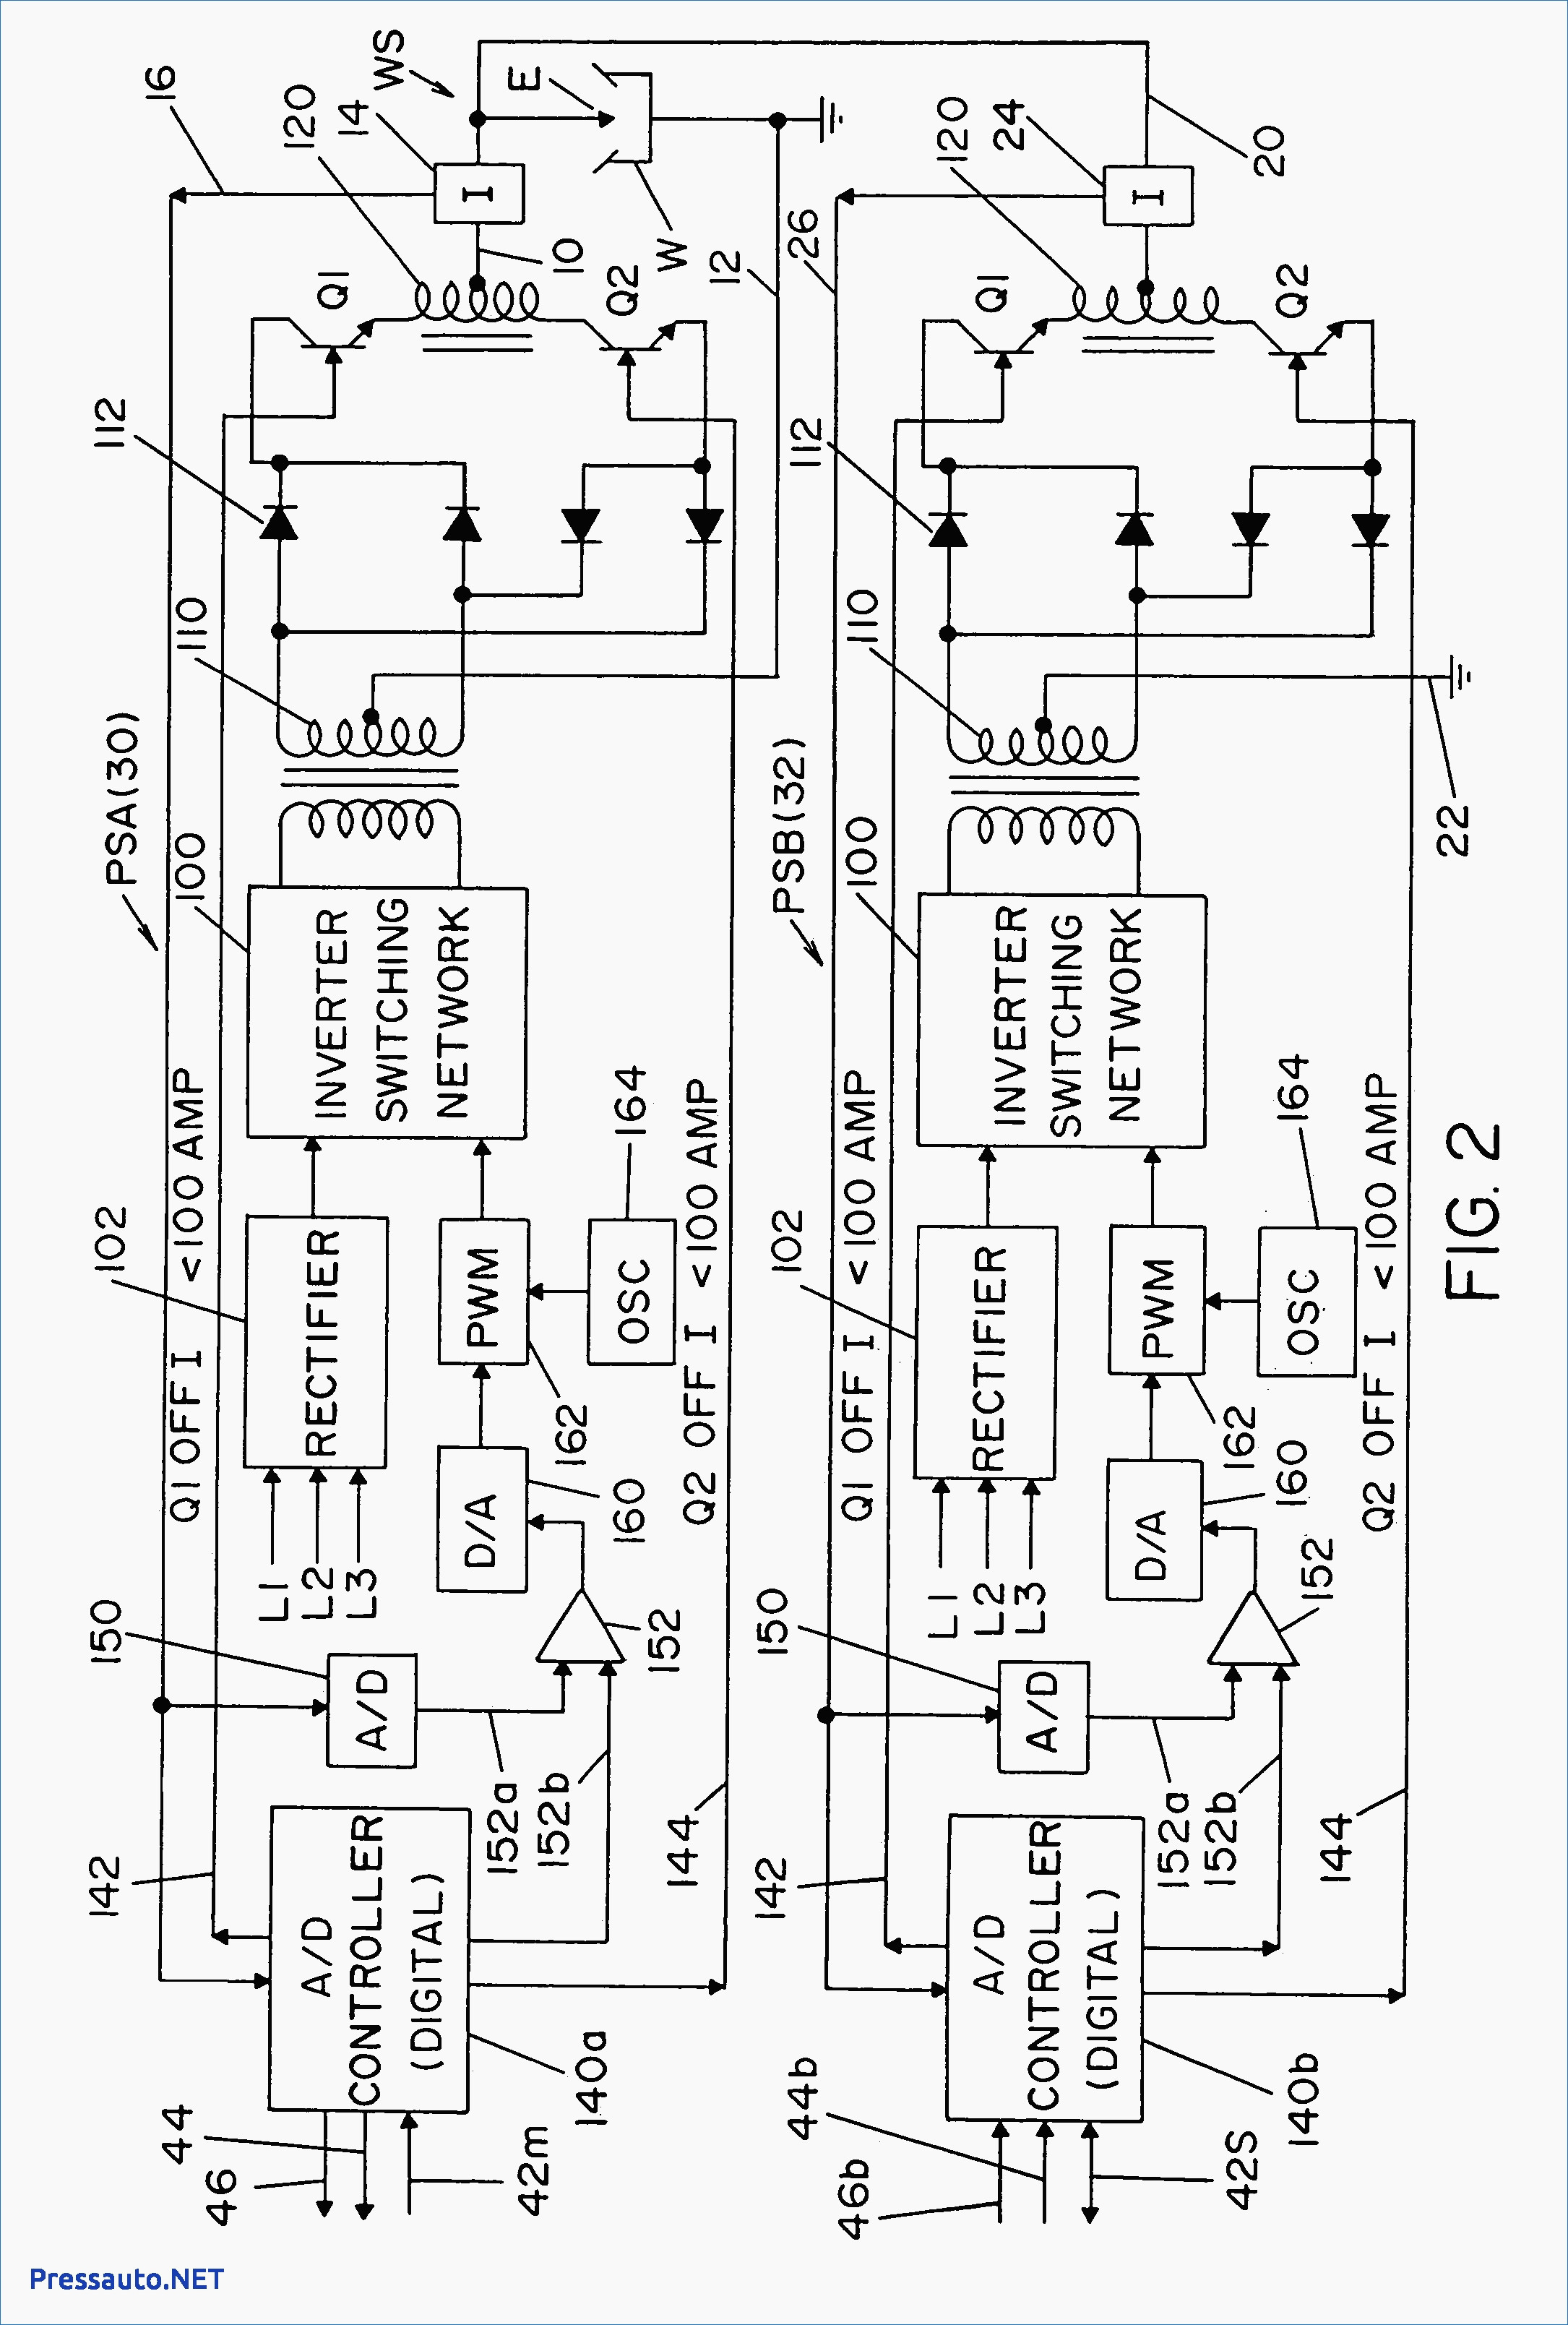 Lincoln Electric Ac 225 Wiring Diagram - Wiring Diagram Expert on lincoln sa alternator diagram, lincoln gas welder, lincoln electric welders, 200 amp service wiring diagram, lincoln sa 200 remote wiring, lincoln sae wiring wiring, lincoln 300 commander wiring-diagram, lincoln sa-200 parts diagram, lincoln ac-225 arc welder prices, lincoln welder sa-200 wiring-diagram,